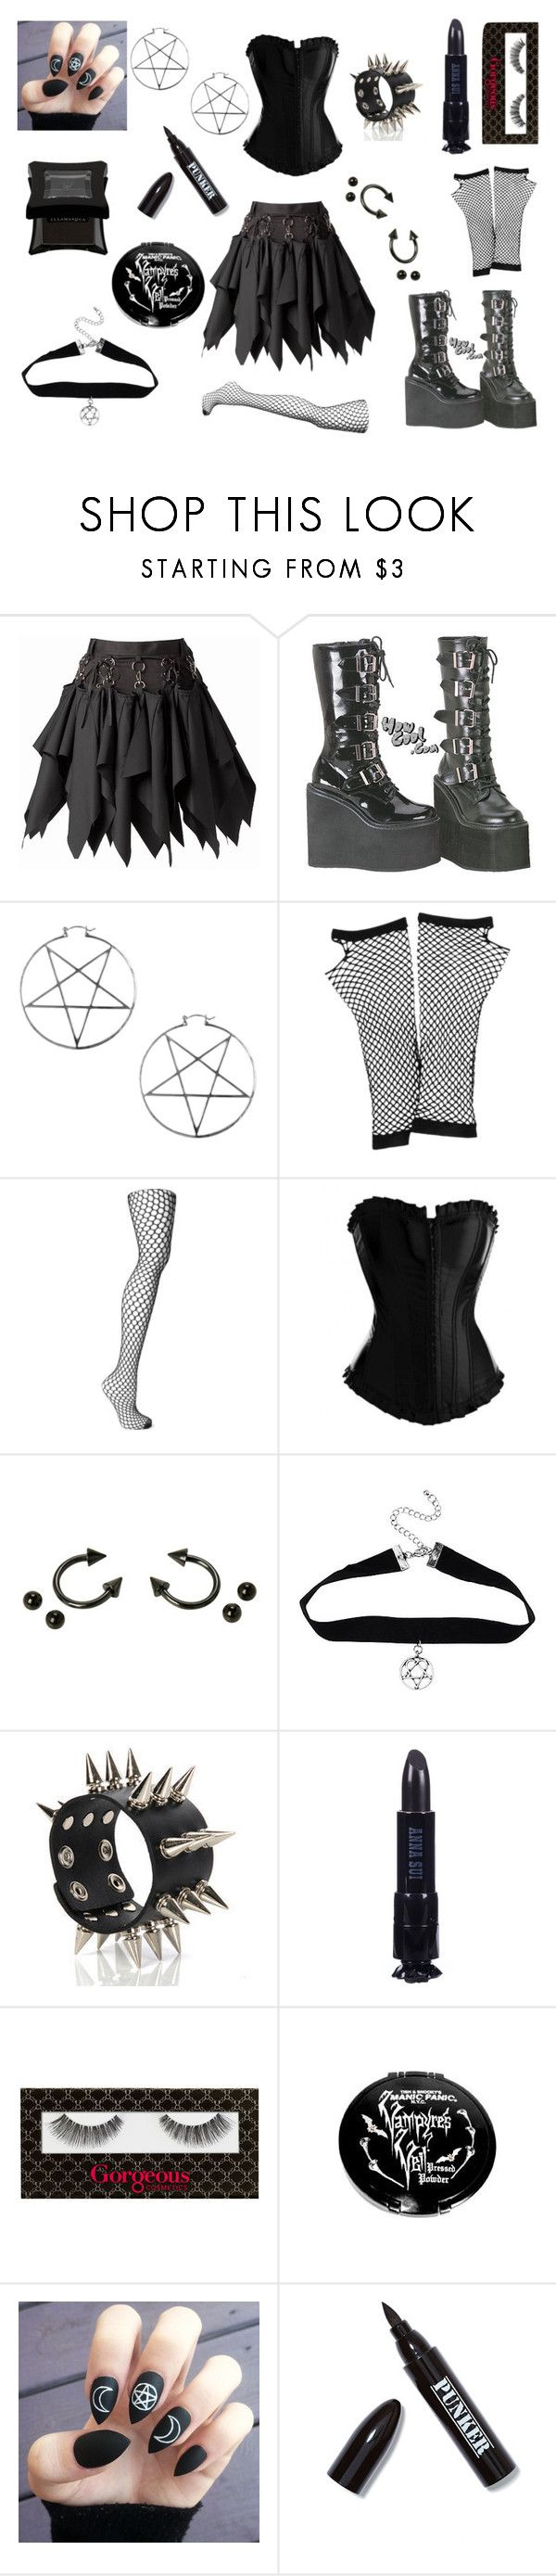 """""""Enoby Dark'ness Dementia Raven Way"""" by xcoffinbangerx ❤ liked on Polyvore featuring Demonia, Me & Zena, Forever 21, Wolford, Hot Topic, deepstyle, Anna Sui, Gorgeous Cosmetics, Ardency Inn and Illamasqua"""